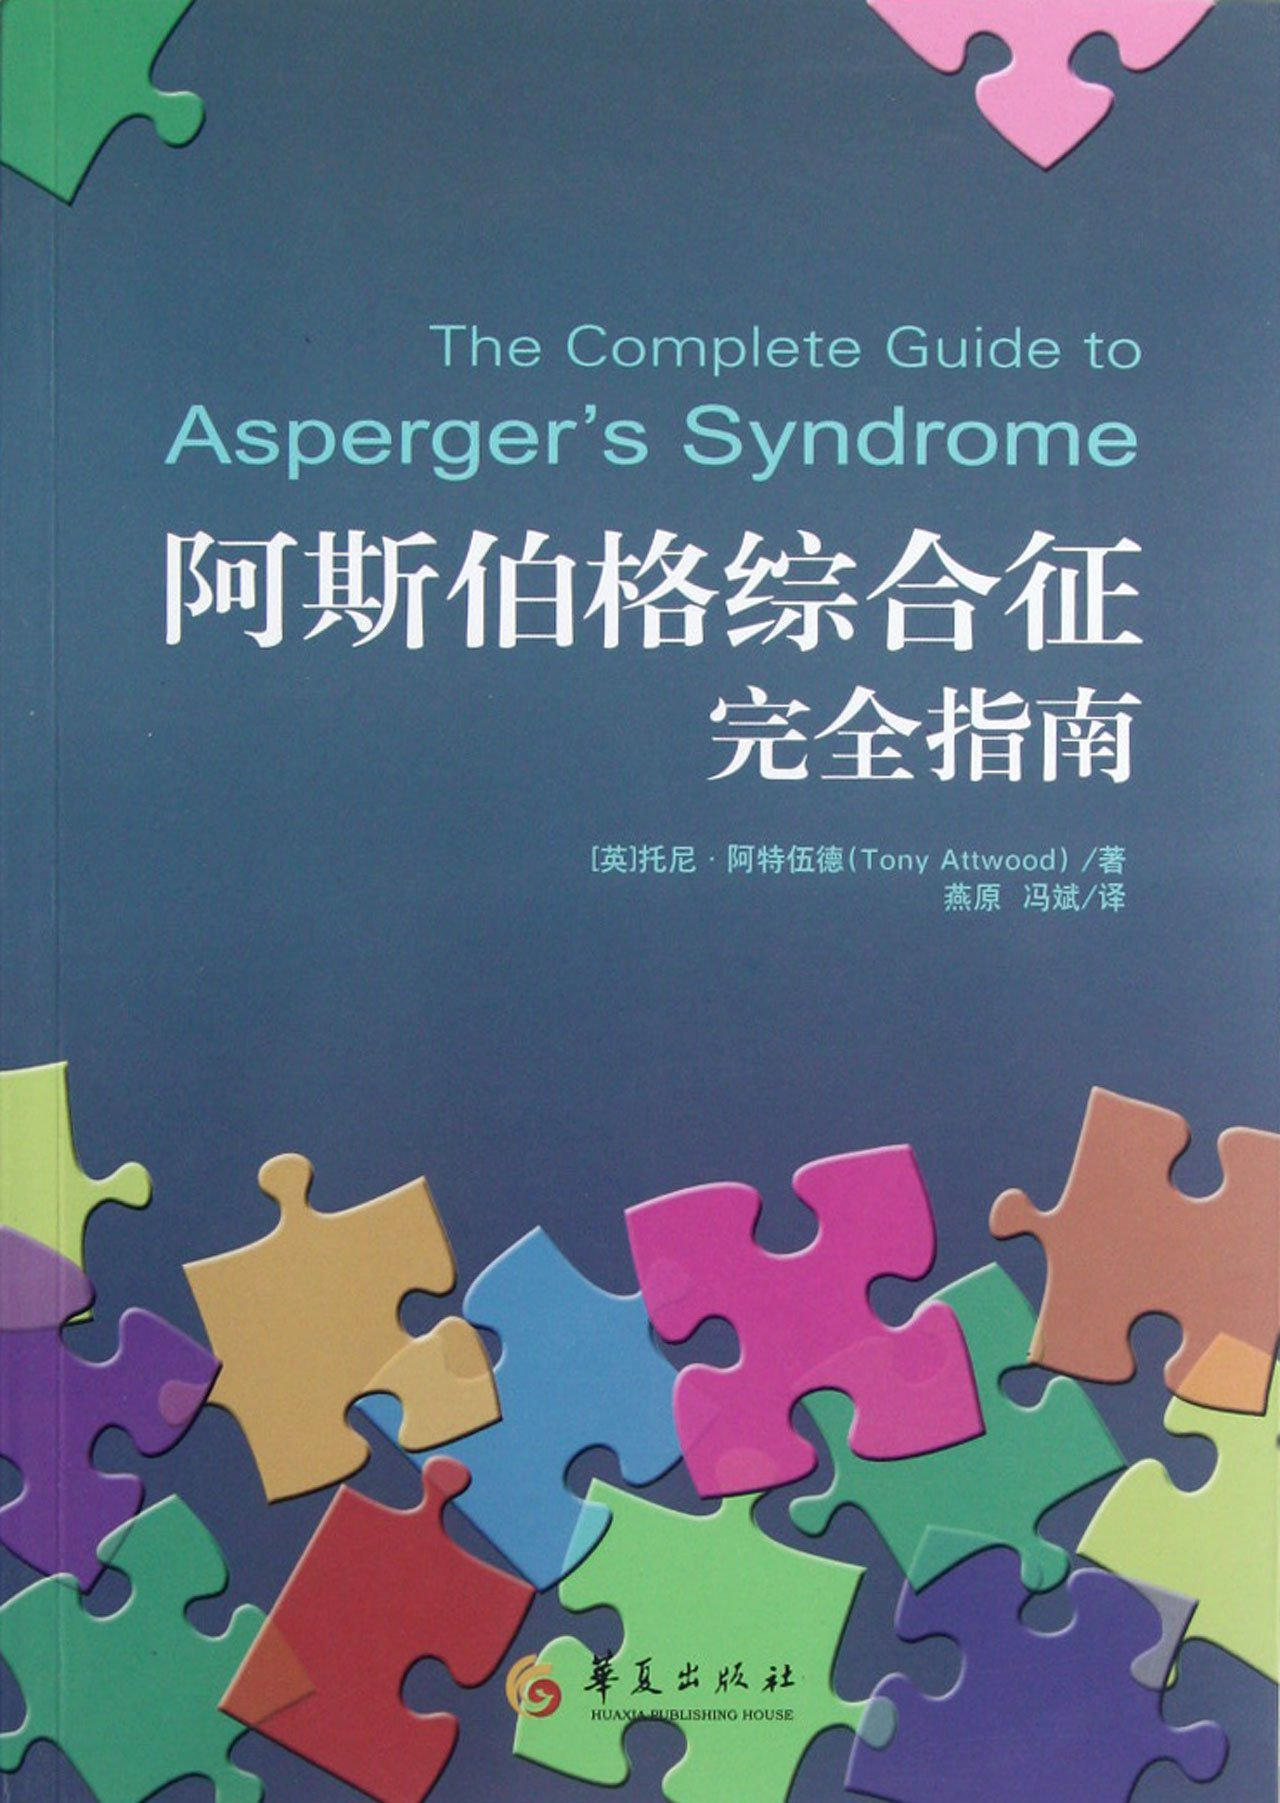 The Complete Guide to Aspergers Syndrome (Chinese Edition): Tony Attwood:  9787508070414: Amazon.com: Books